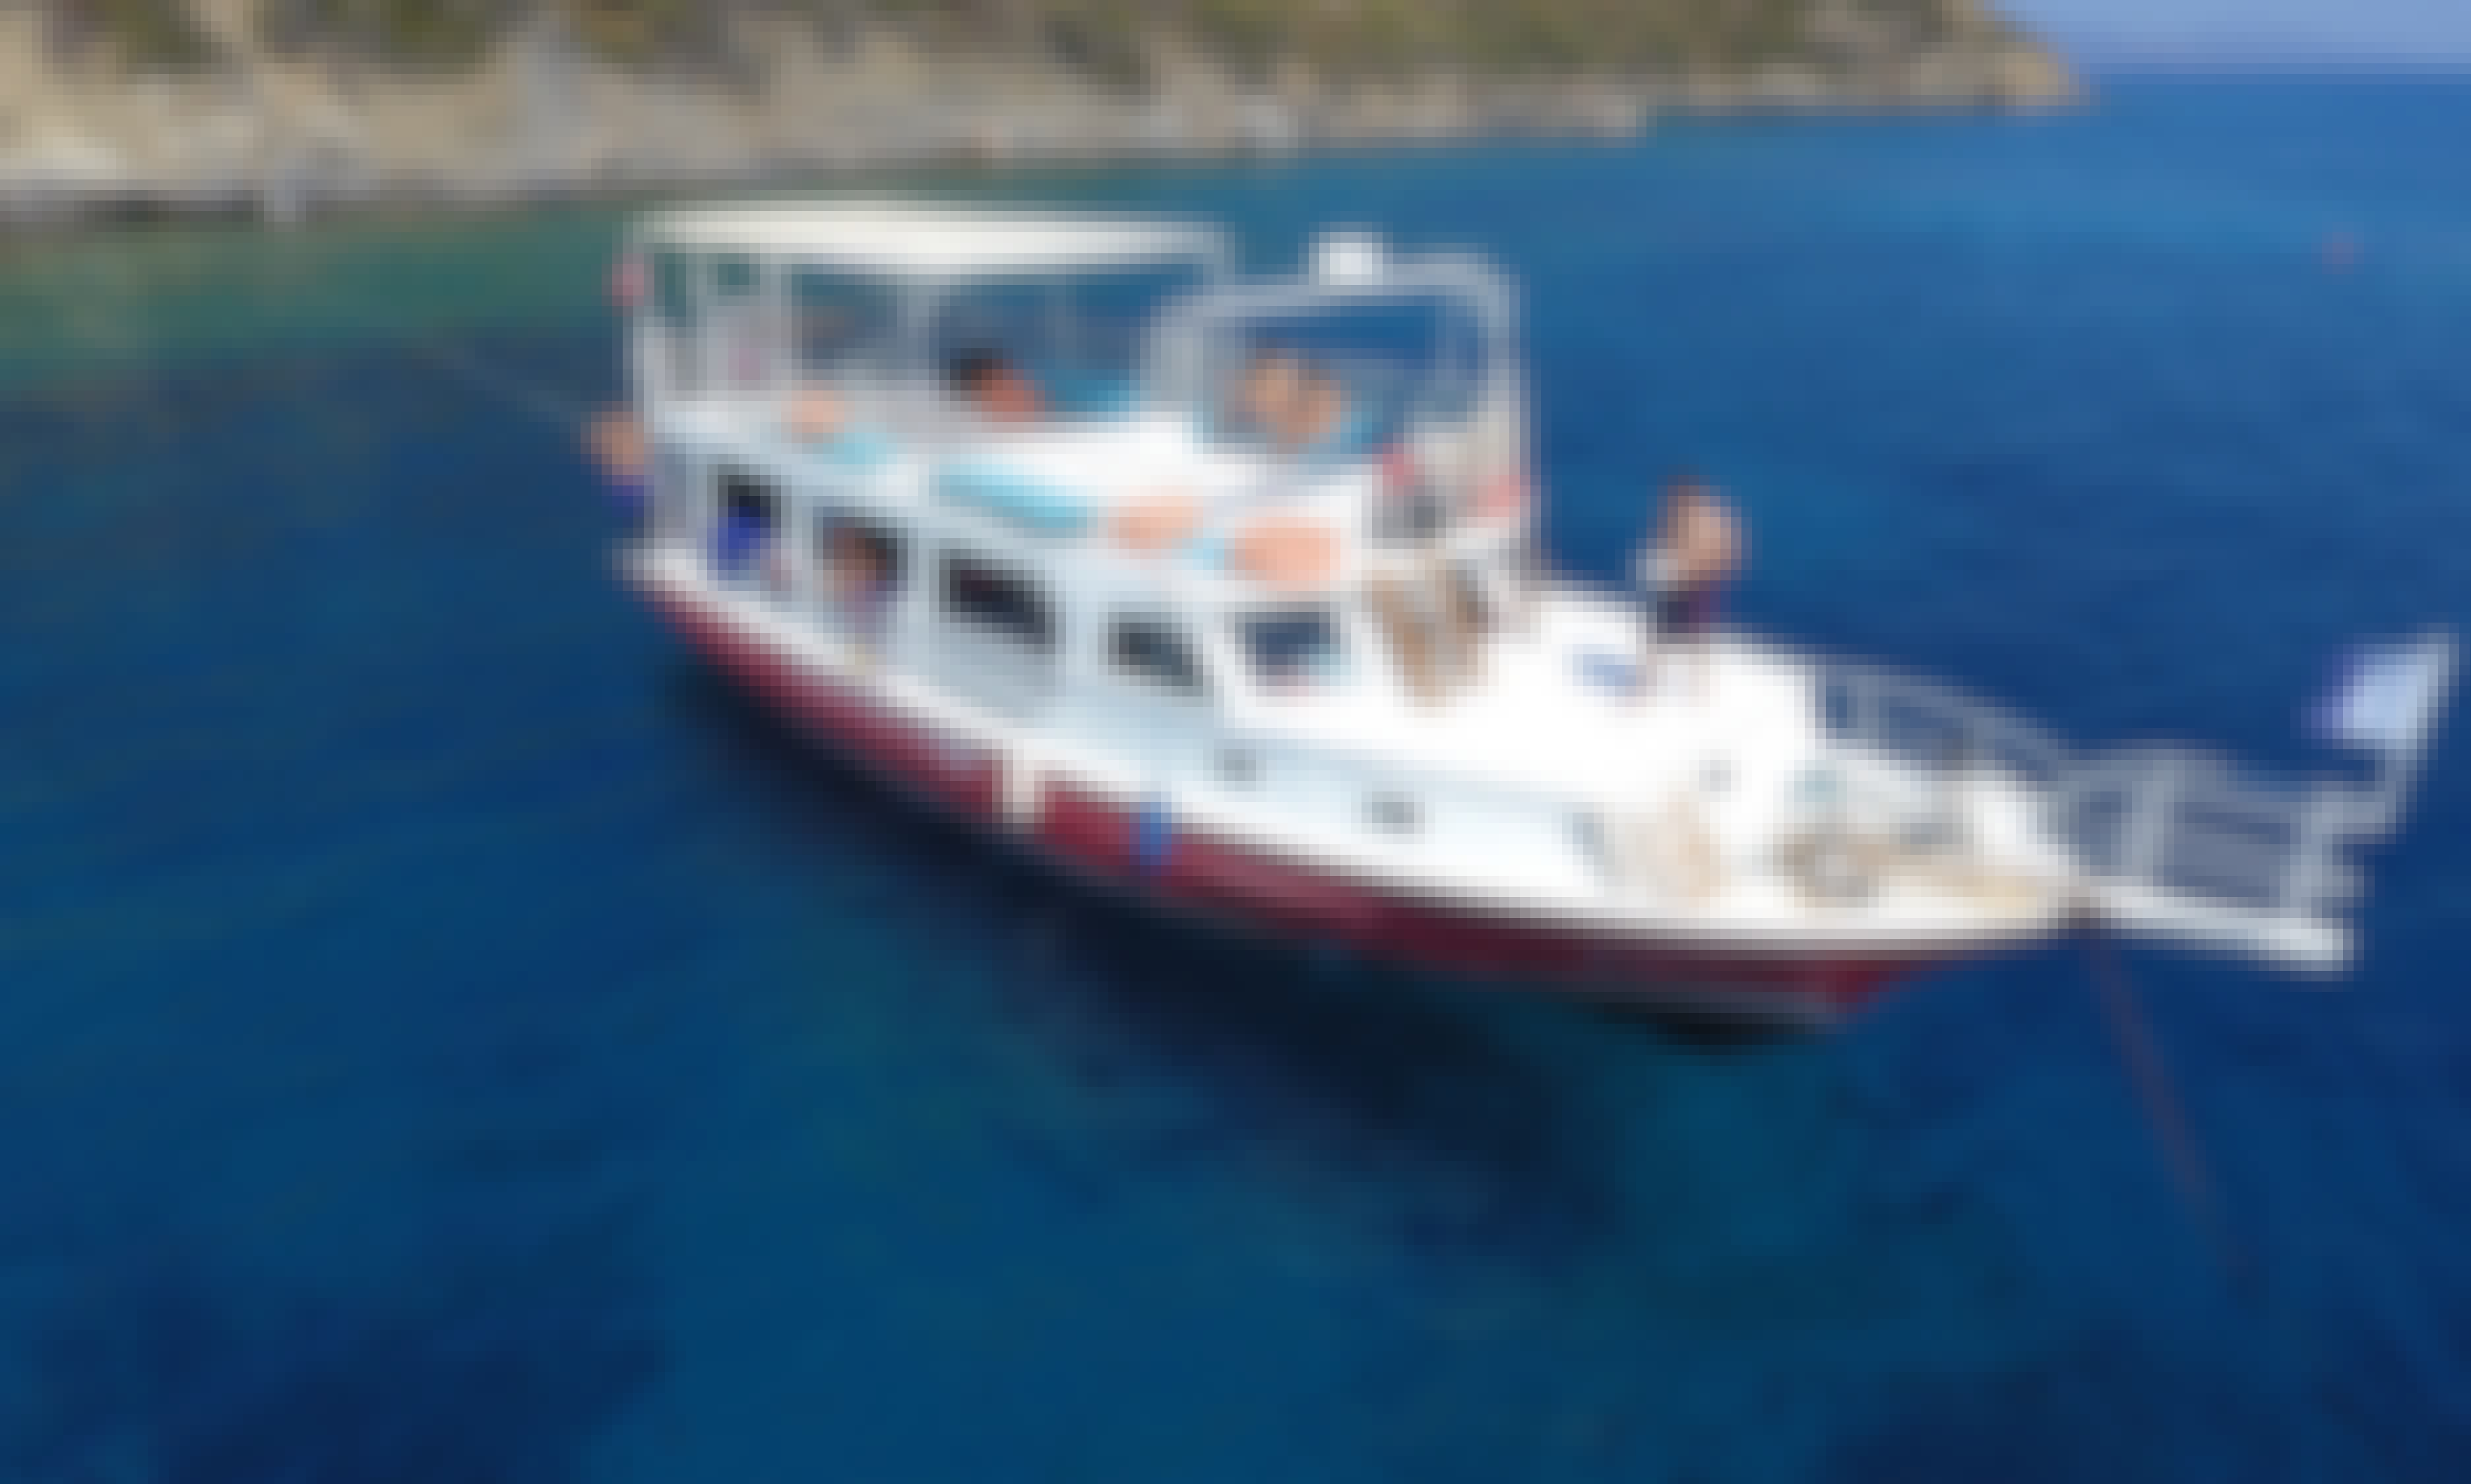 """Take your dives with 22 years of experience and confidence. The only address in Datça for diving training with international standards. PADI & CMAS (TSSF) Diving Center, UÇANBALIK Diving Center. 40 Diving Points are waiting for you with """"Night Dives by Boat"""" and Dives with Boat Accommodation. NEVER STOP EXPLORING"""